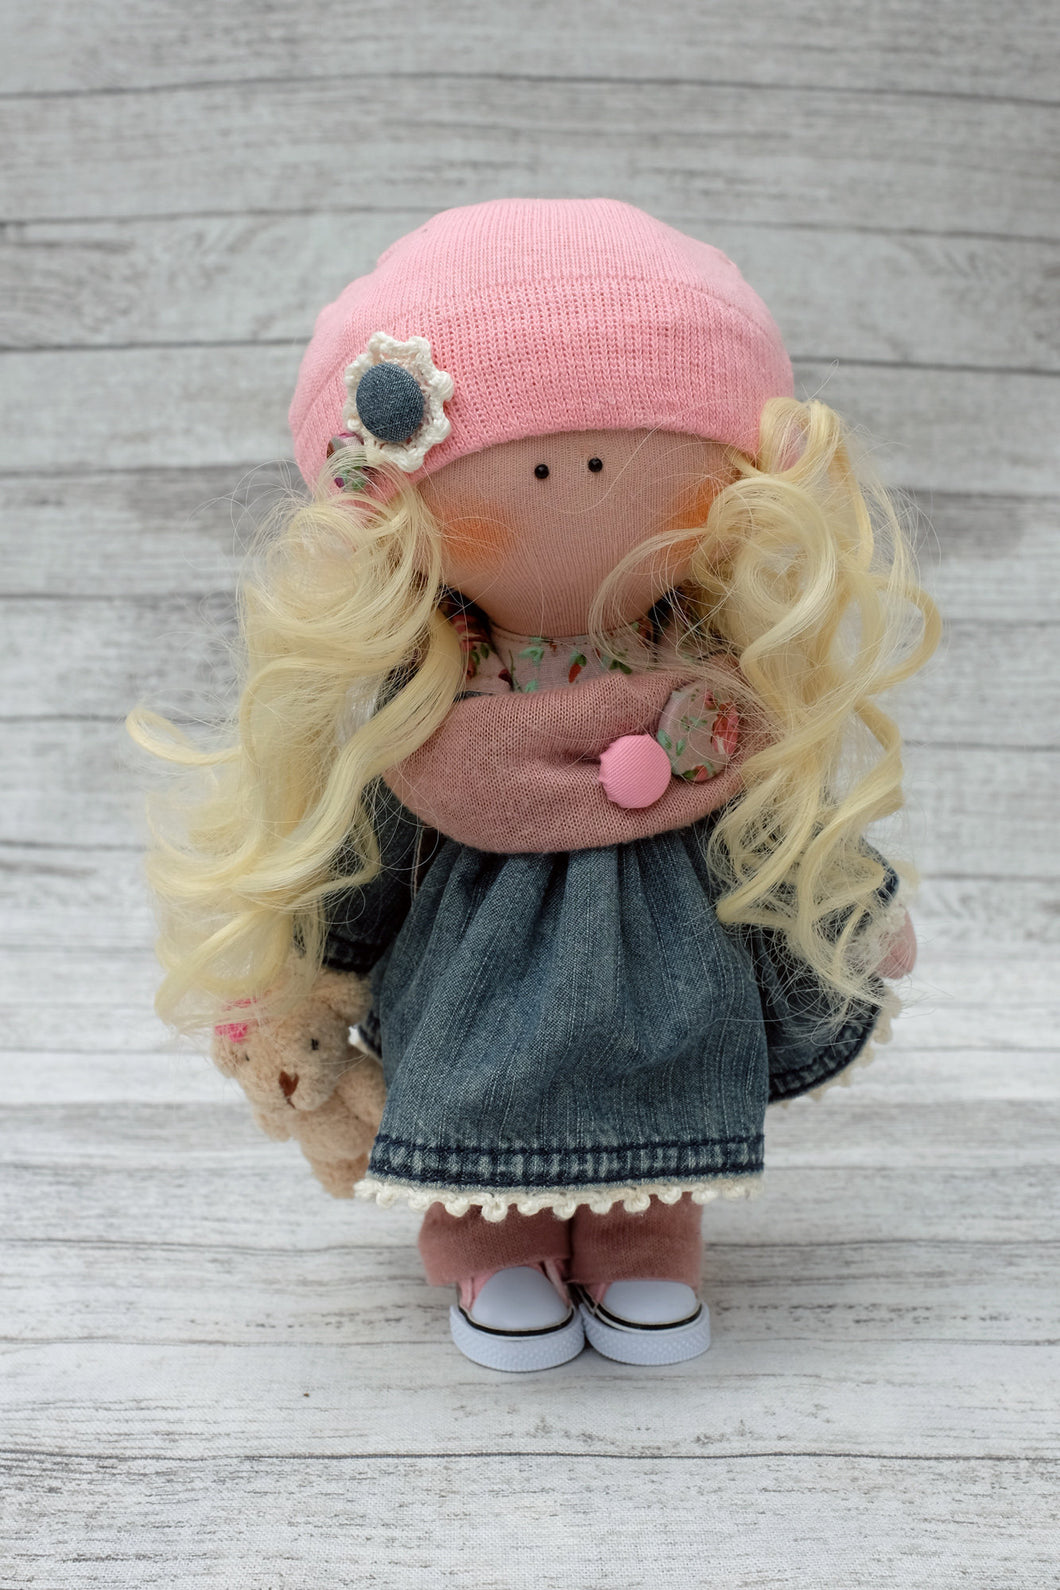 Sophia – Collectible Handmade Textile Interior Doll